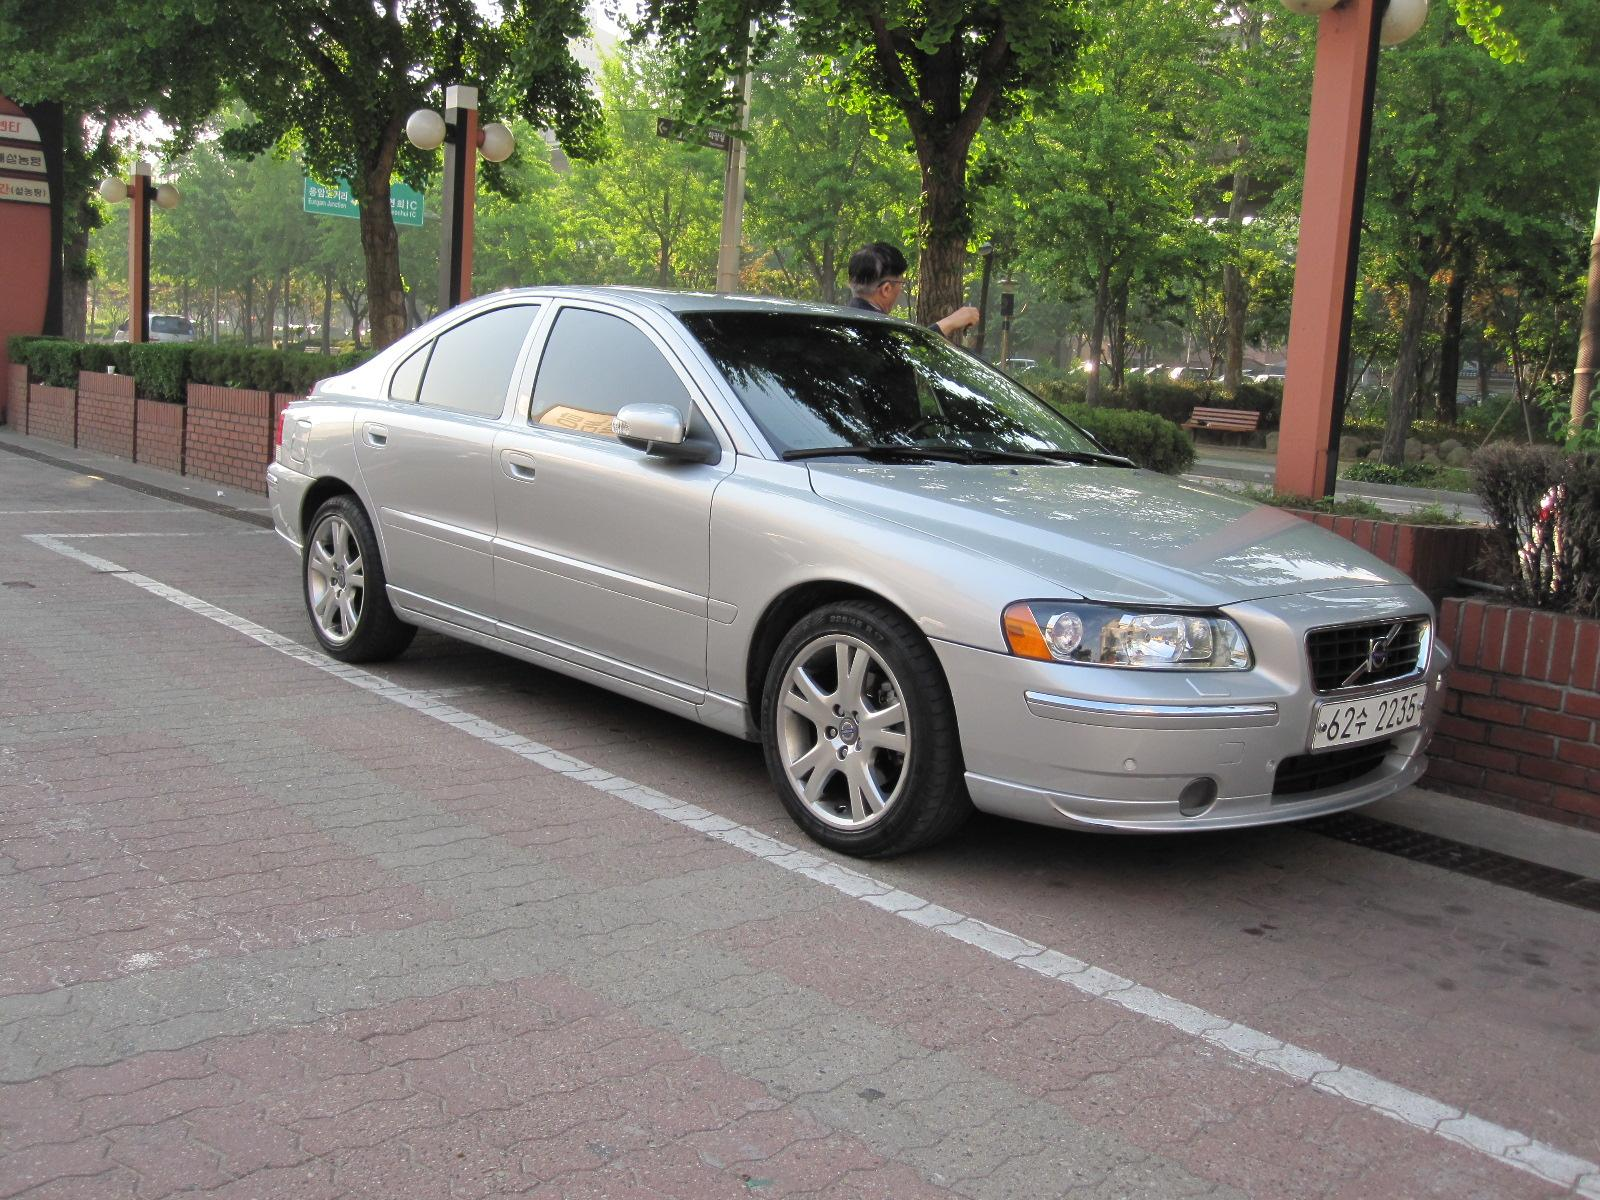 62soo2235 2007 volvo s60 specs photos modification info. Black Bedroom Furniture Sets. Home Design Ideas